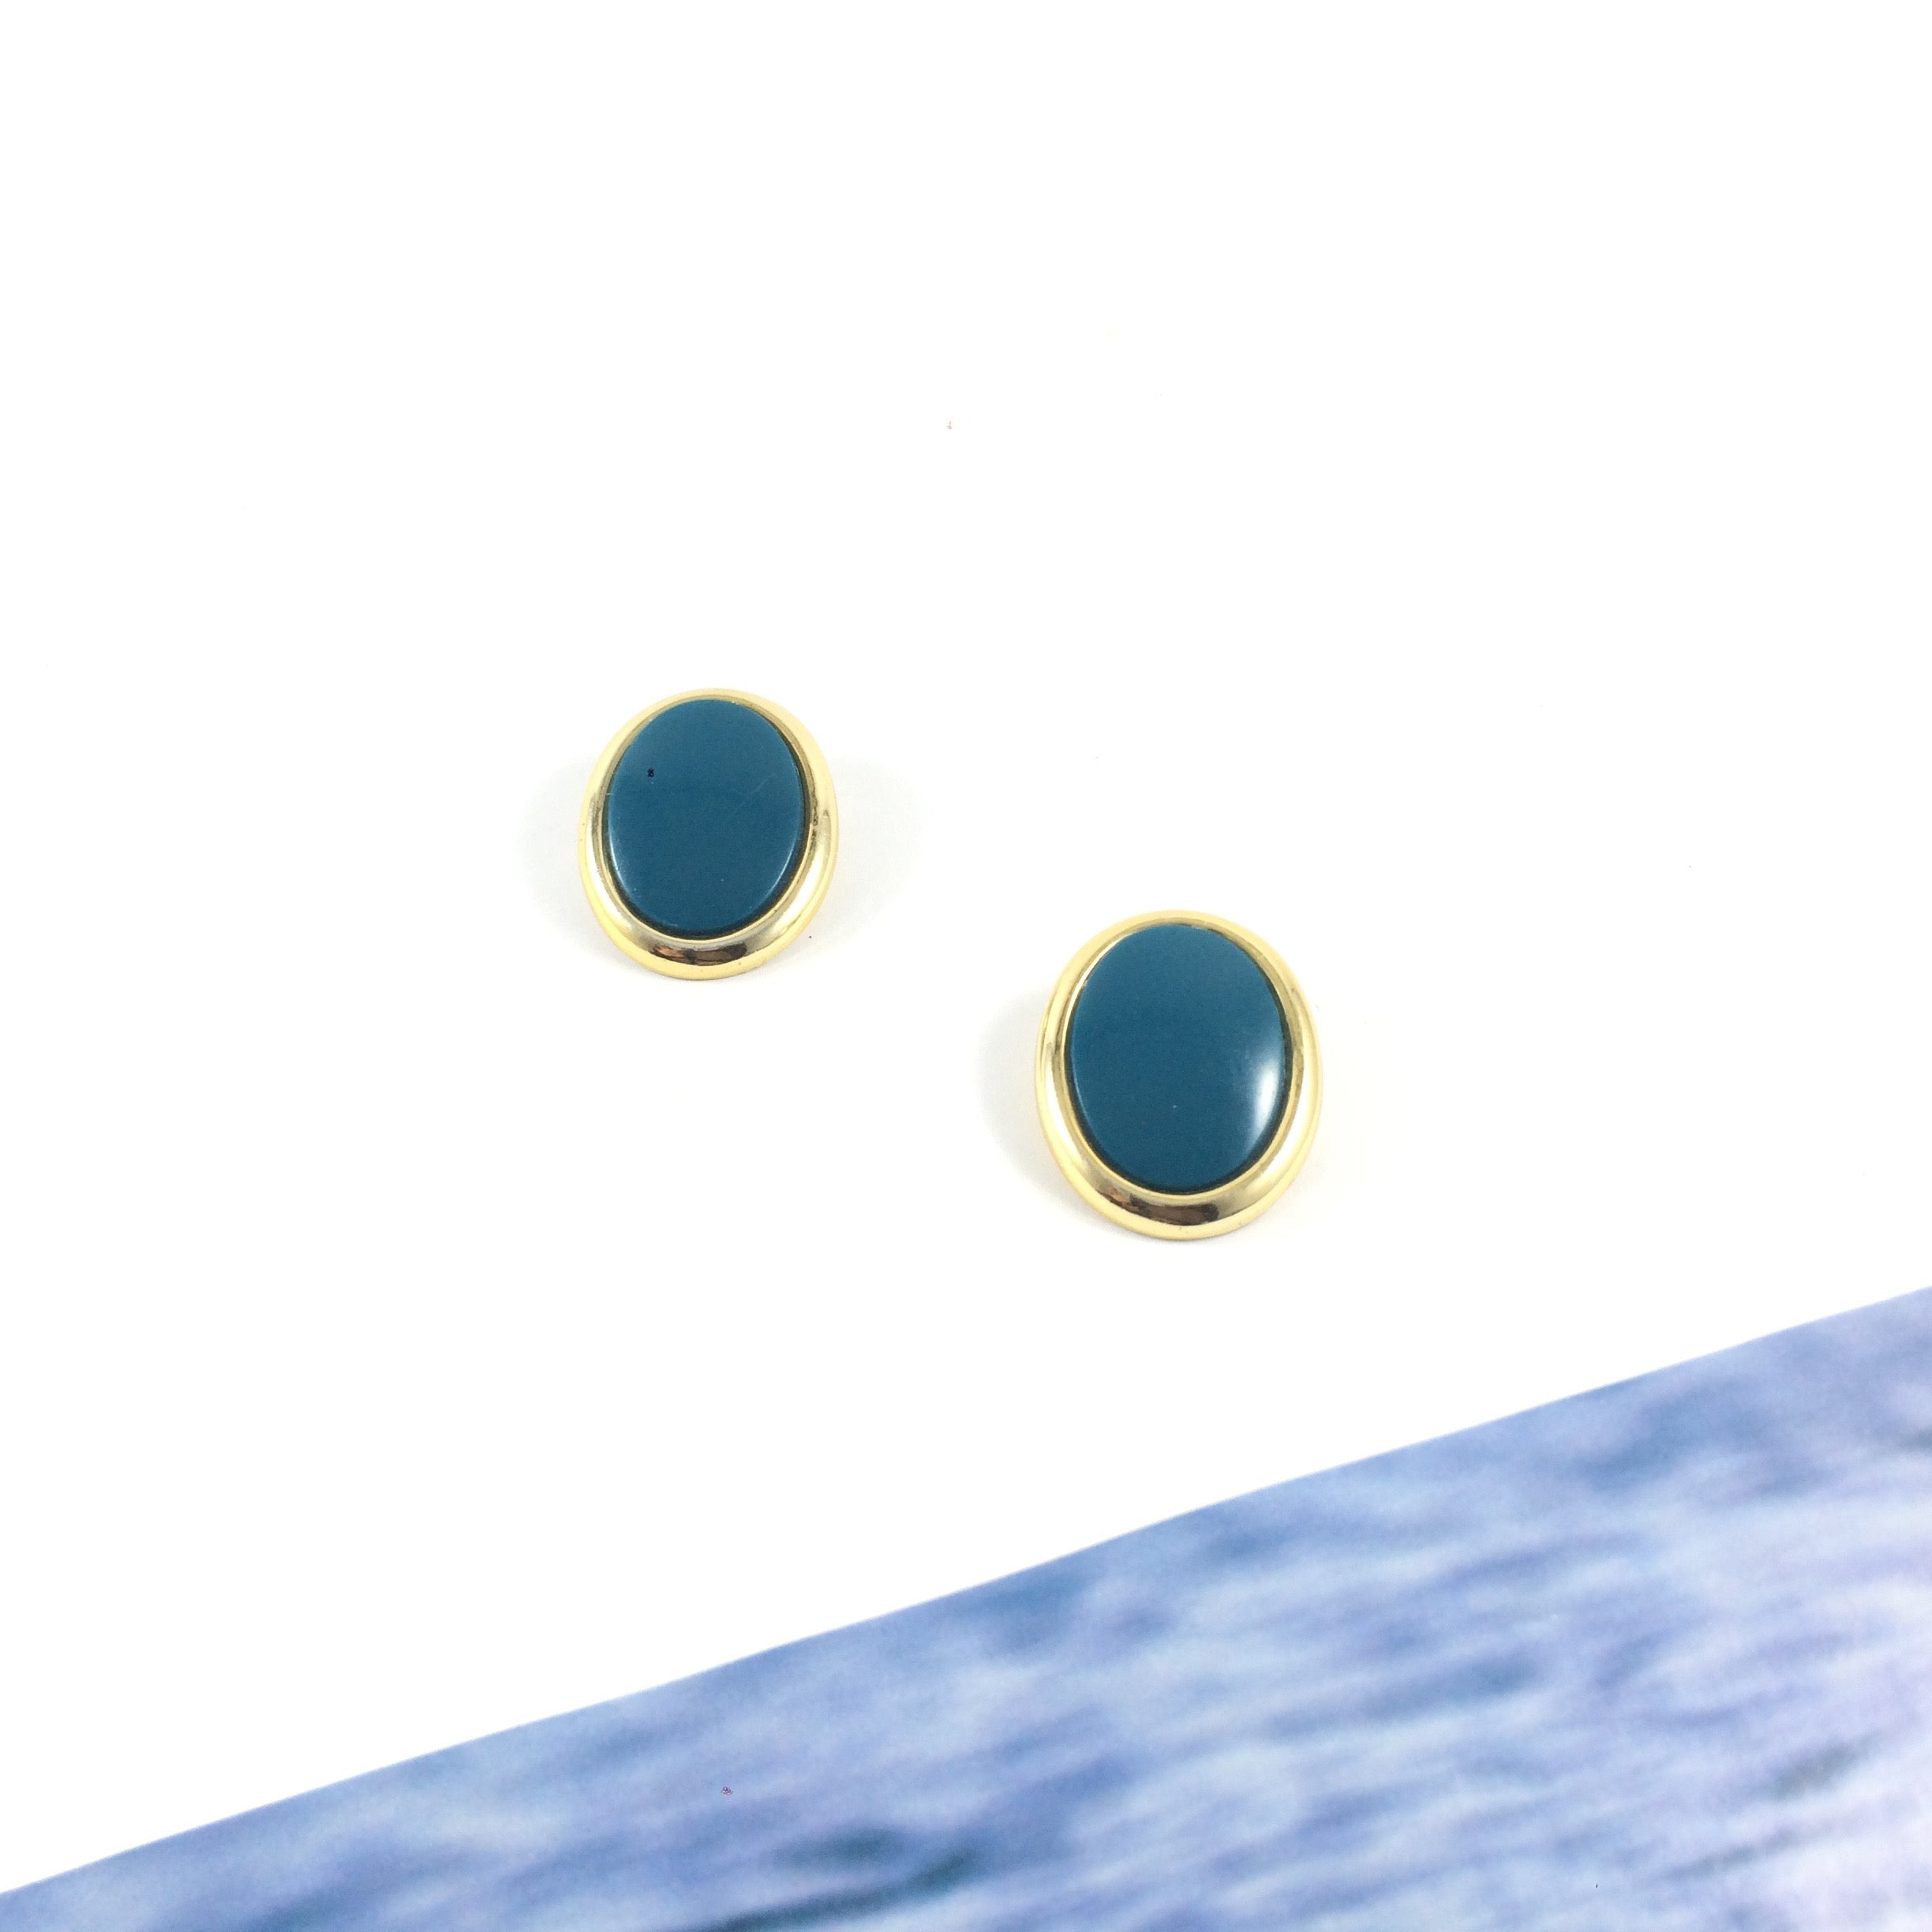 Bahama 70s Vintage Clip-on Earrings